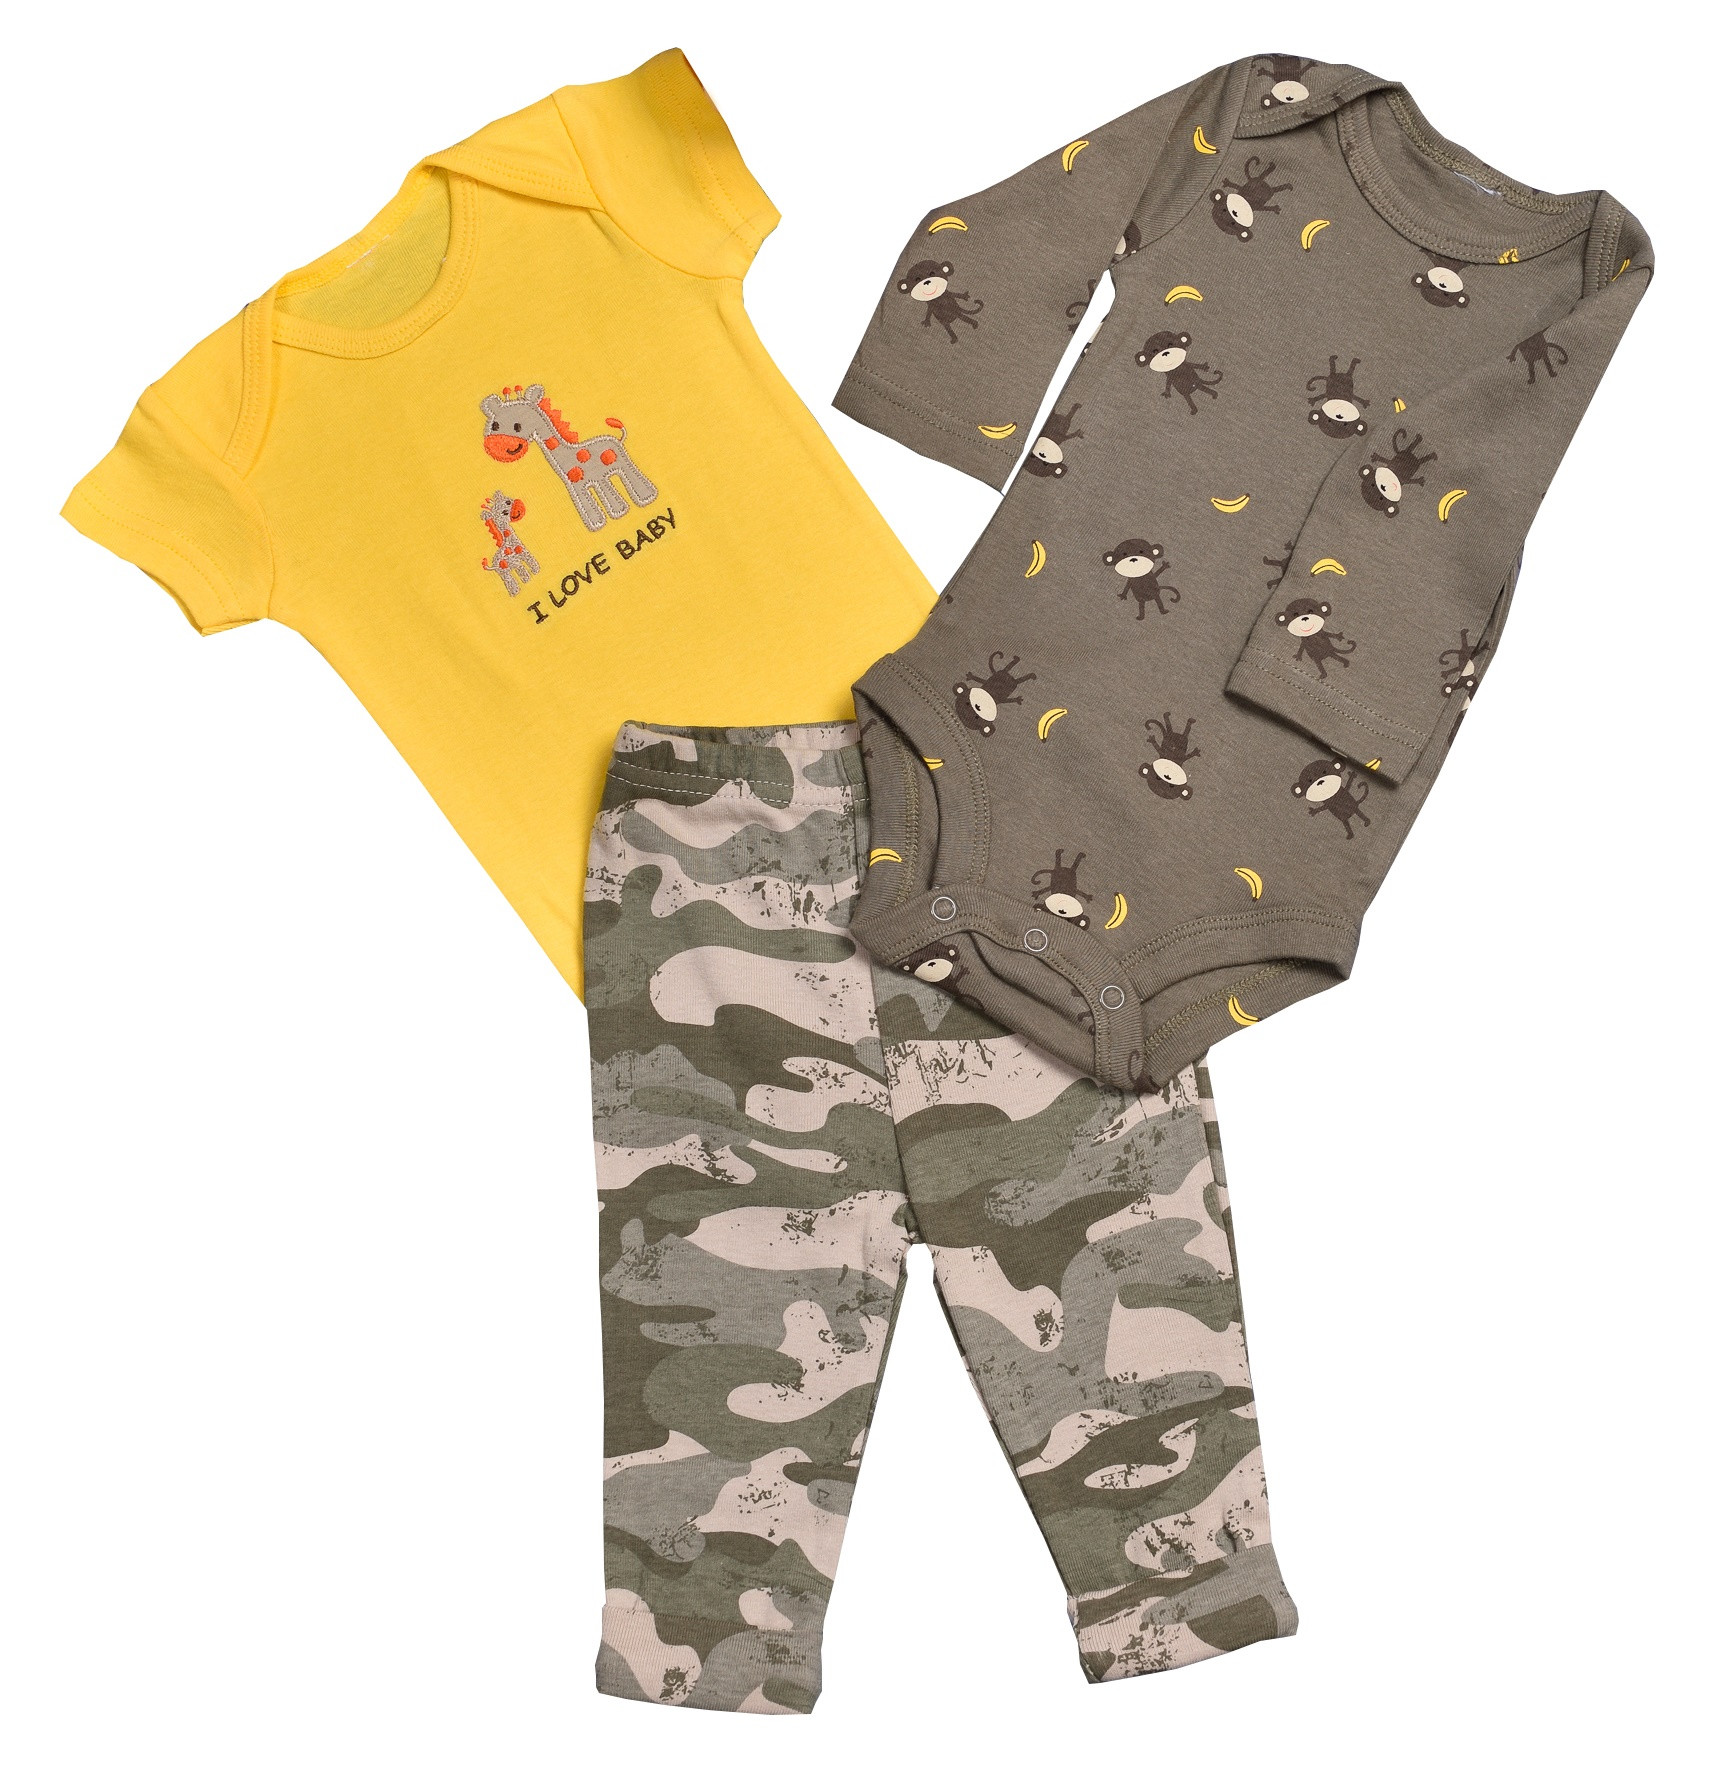 Mini Habibi Fancy Set Yellow 3 Pieces Baby Clothes 0 2